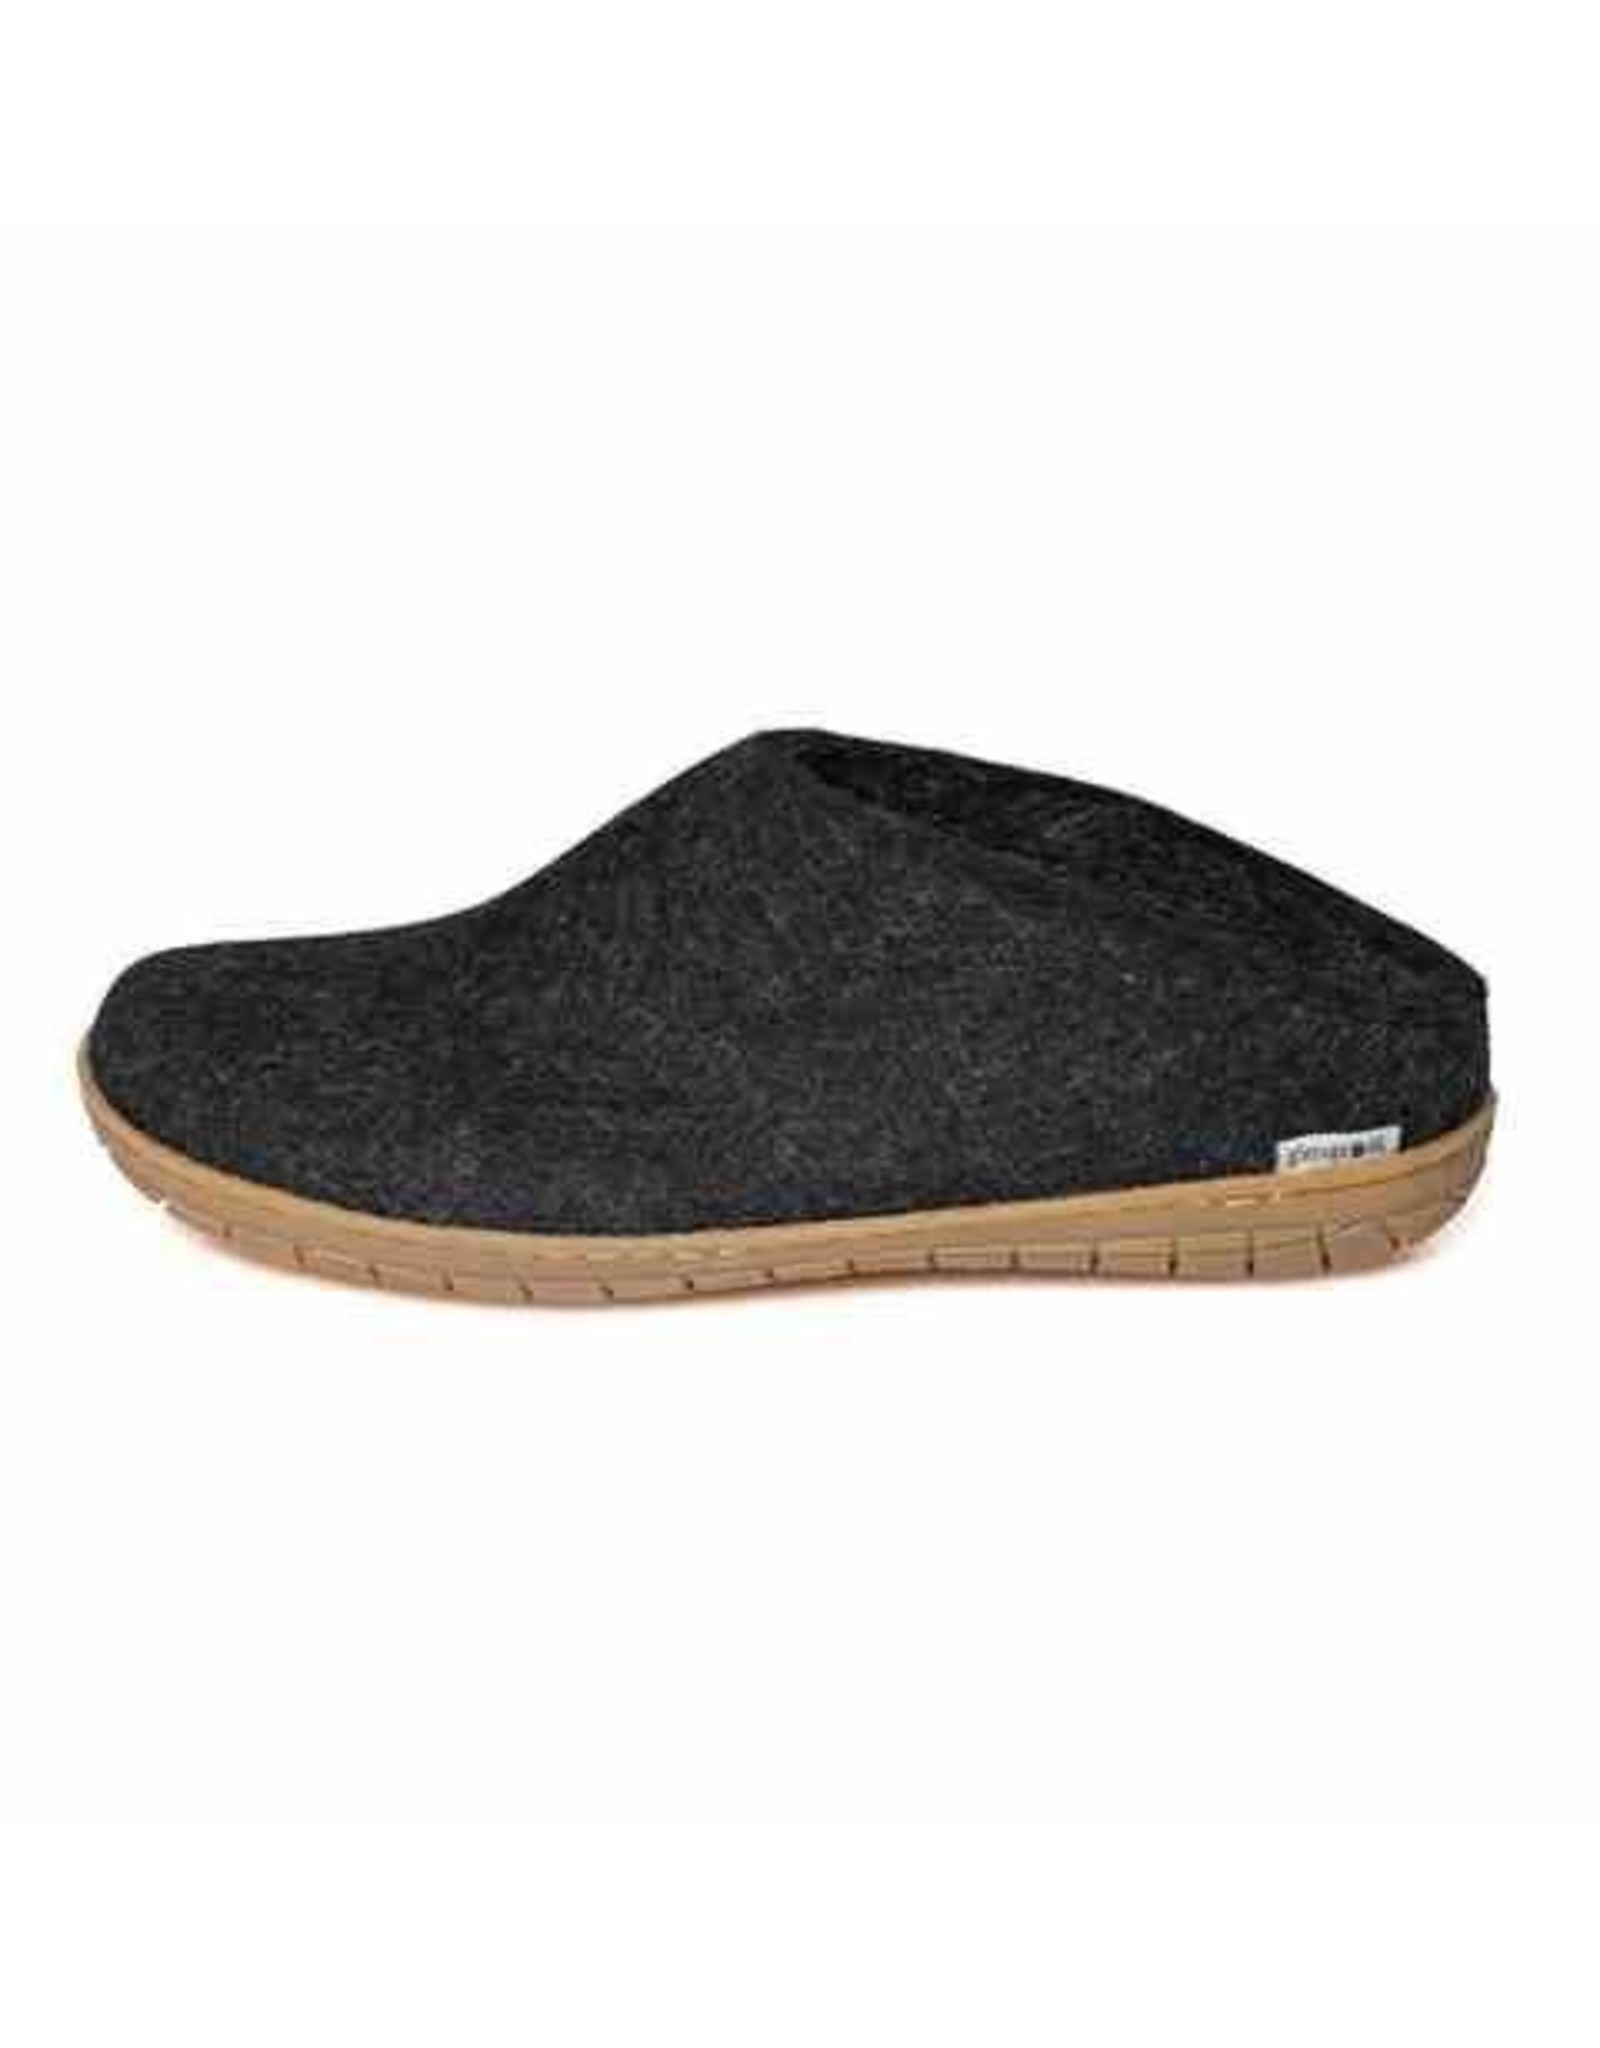 GlerupsUSA Outdoor Slip On